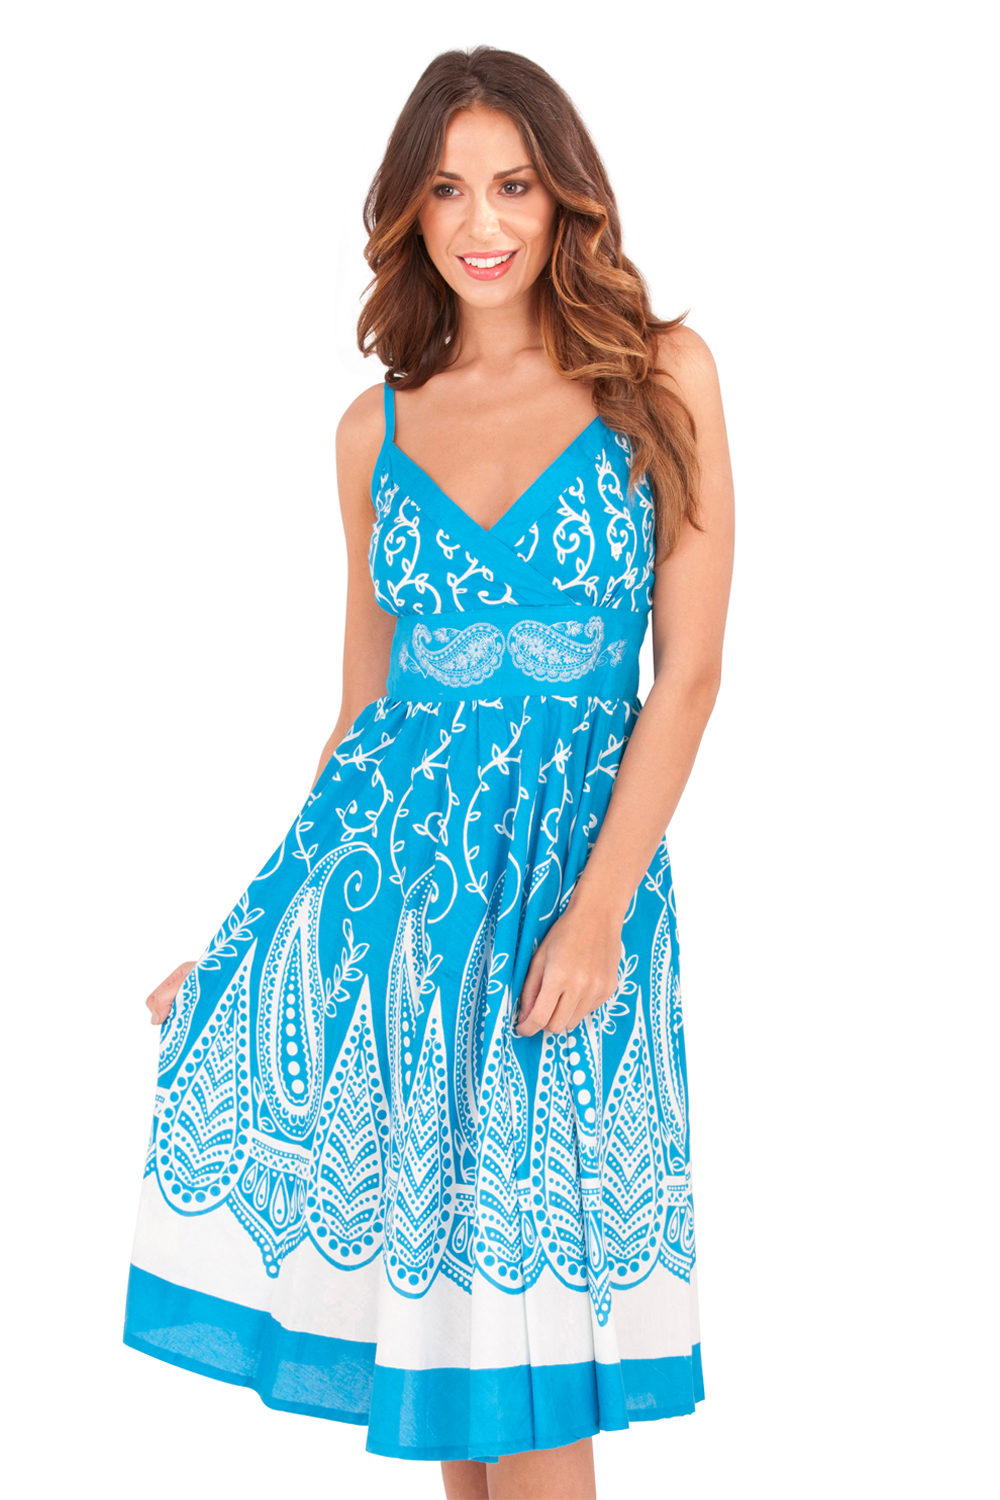 Free shipping BOTH ways on Dresses, Women, from our vast selection of styles. Fast delivery, and 24/7/ real-person service with a smile. Click or call